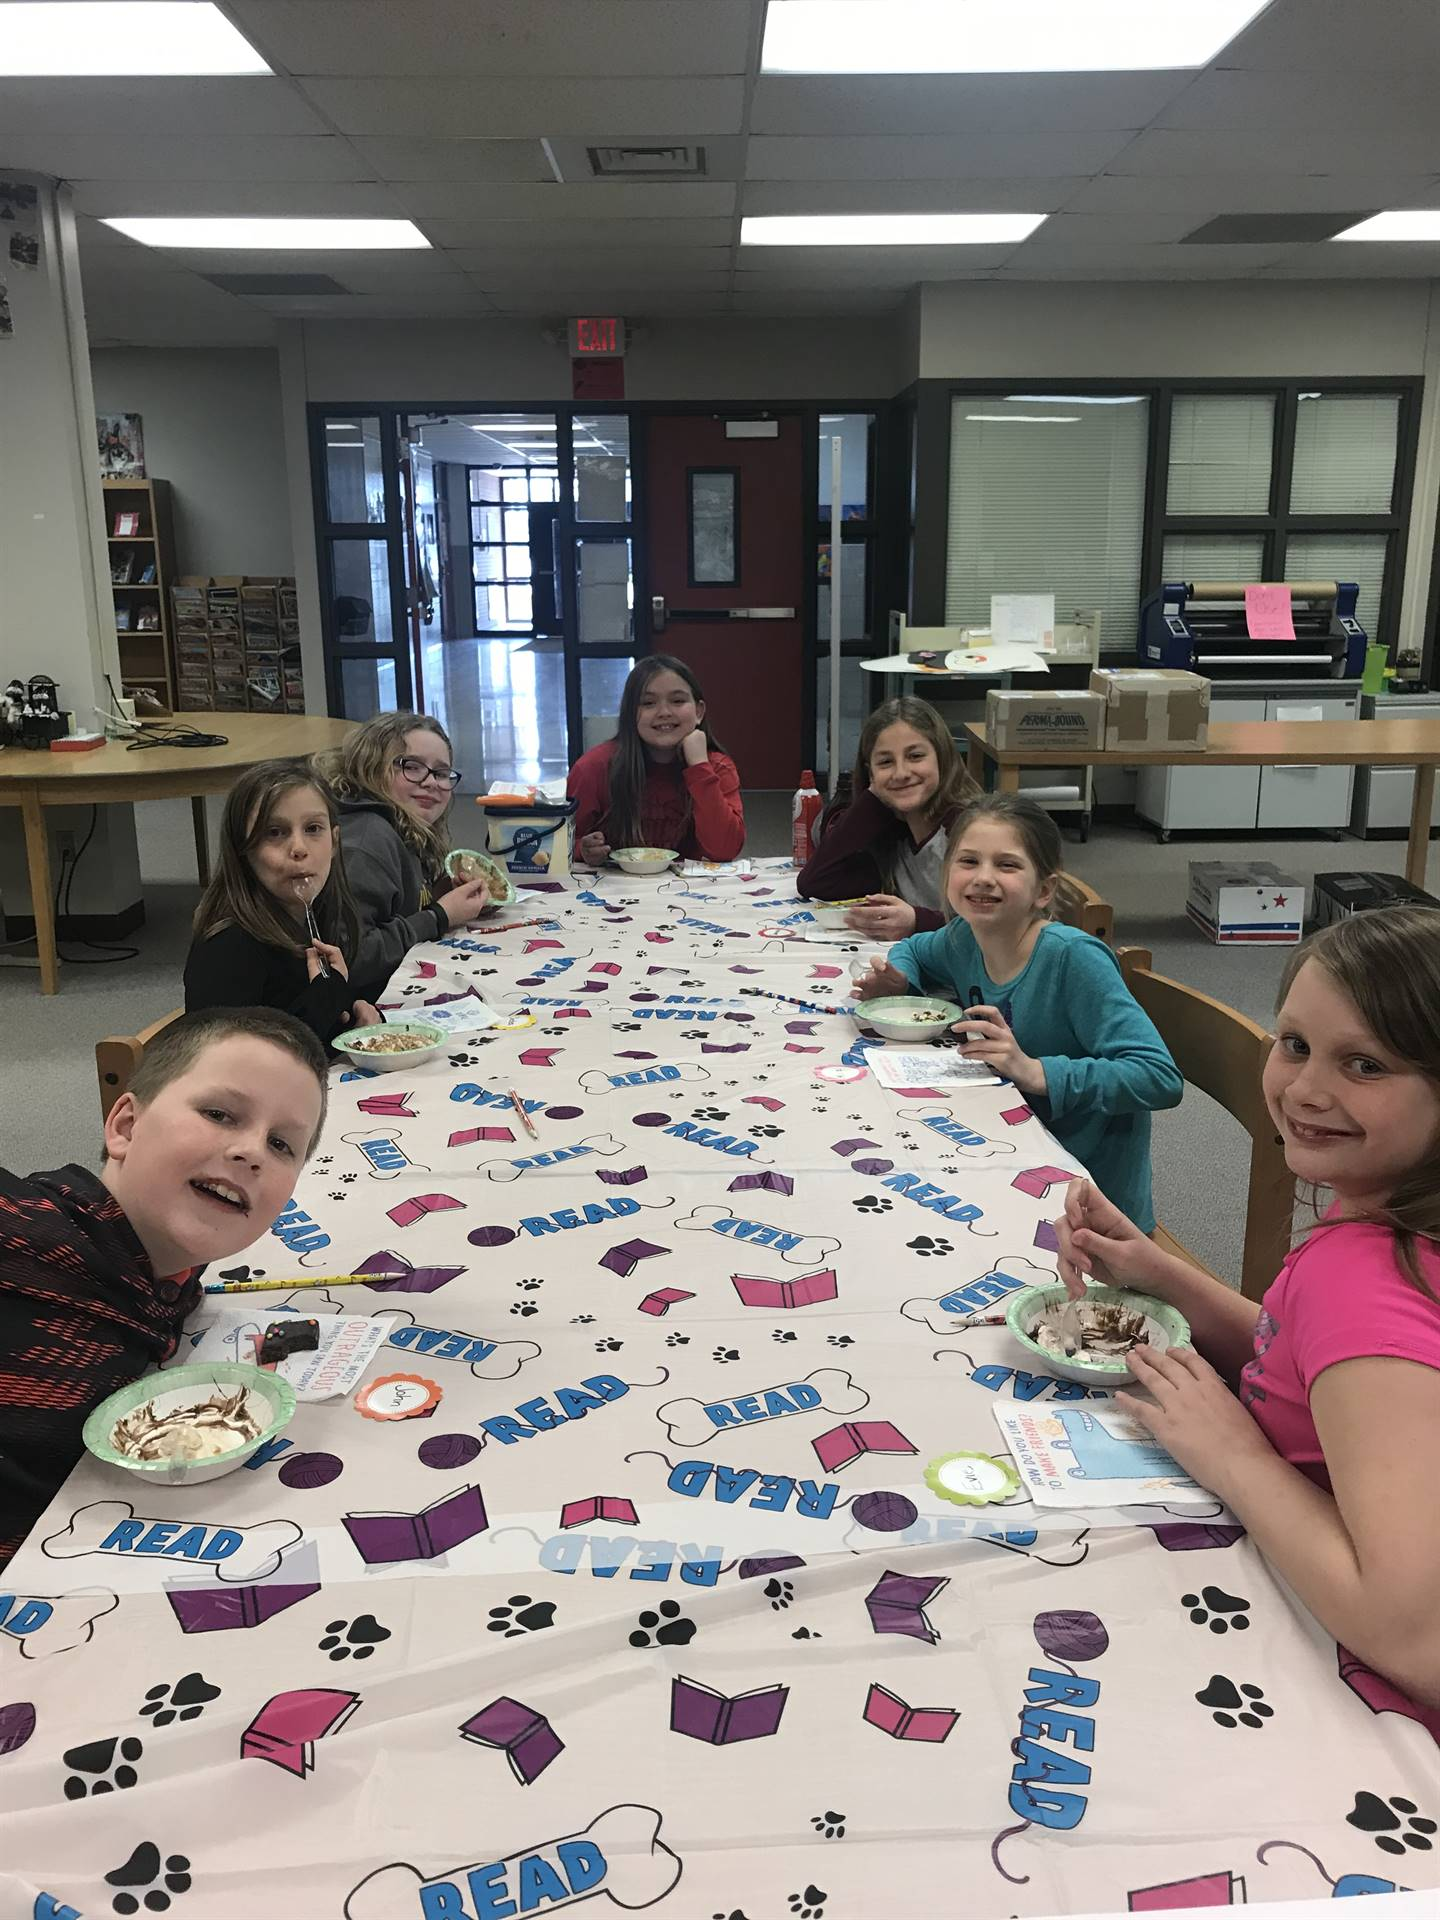 Students eating brownies in Library for celebration of reading books